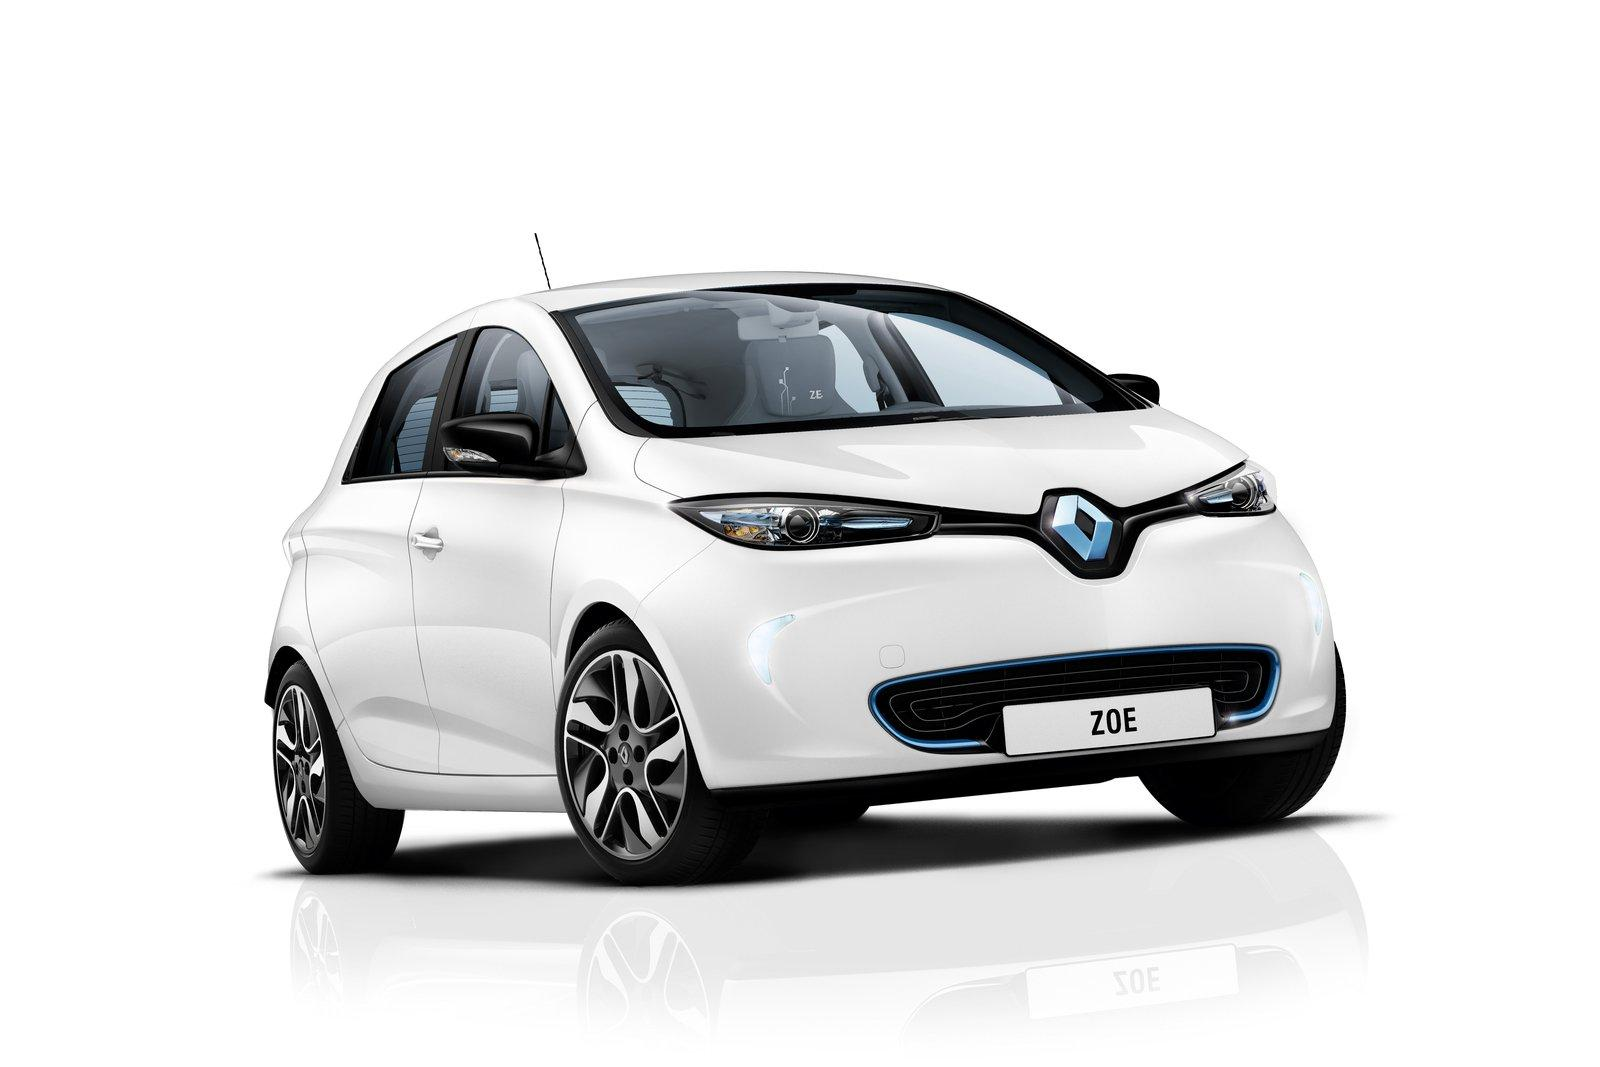 renault zoe 2013 car barn sport. Black Bedroom Furniture Sets. Home Design Ideas